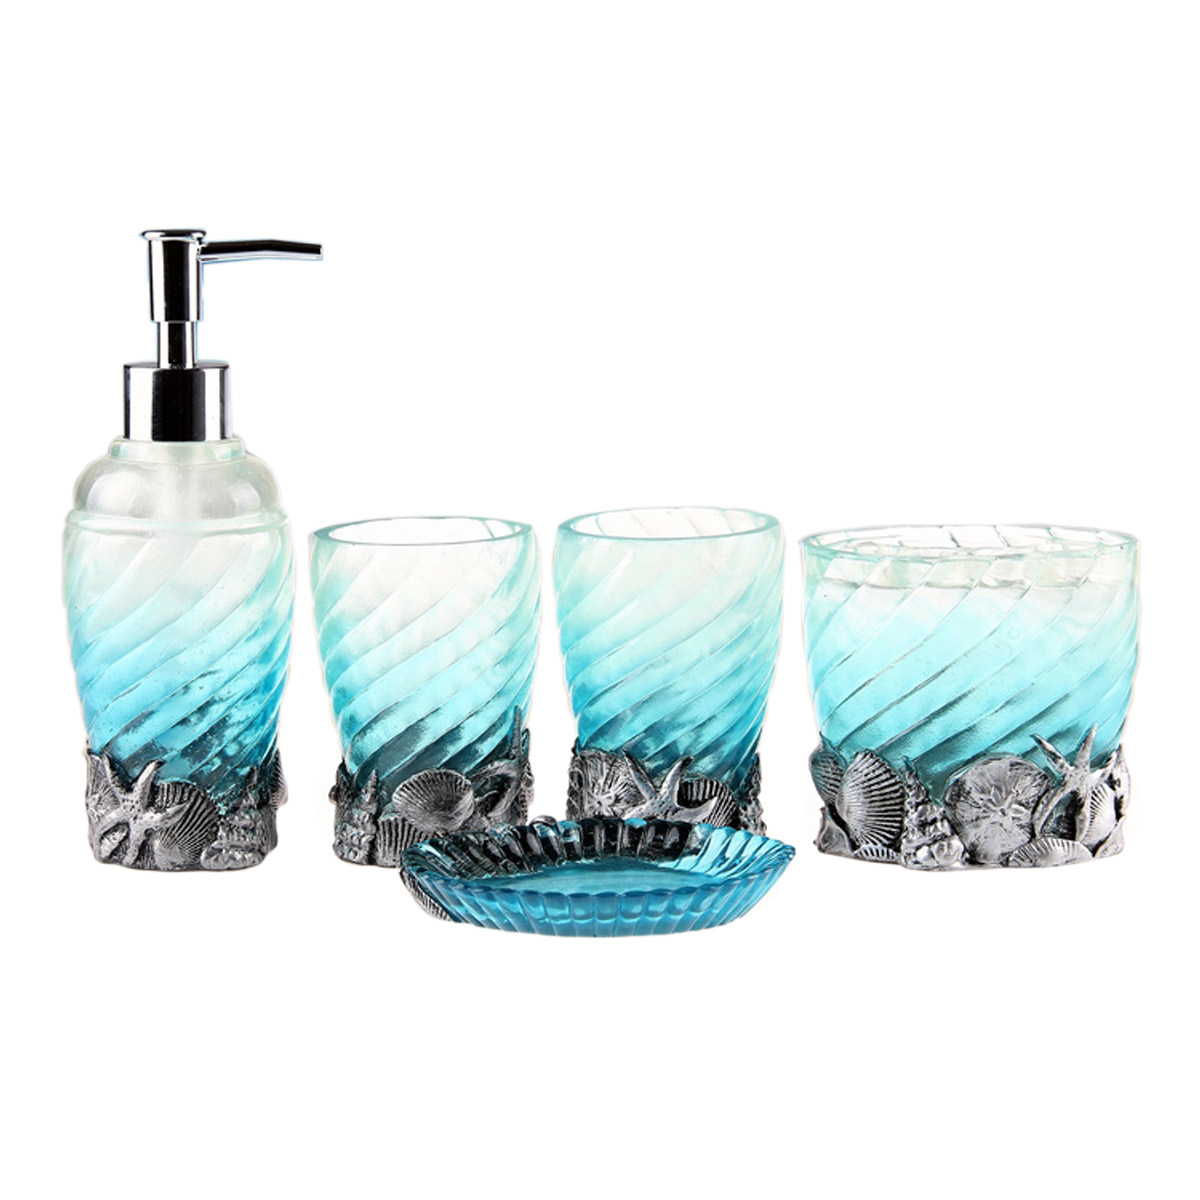 5pc/set Bathroom Accessories Ocean Blue Bath Sets Resin Accessory  Toothbrush Holder Soap Dish Lotion Dispenser In Bathroom Accessories Sets  From Home ...